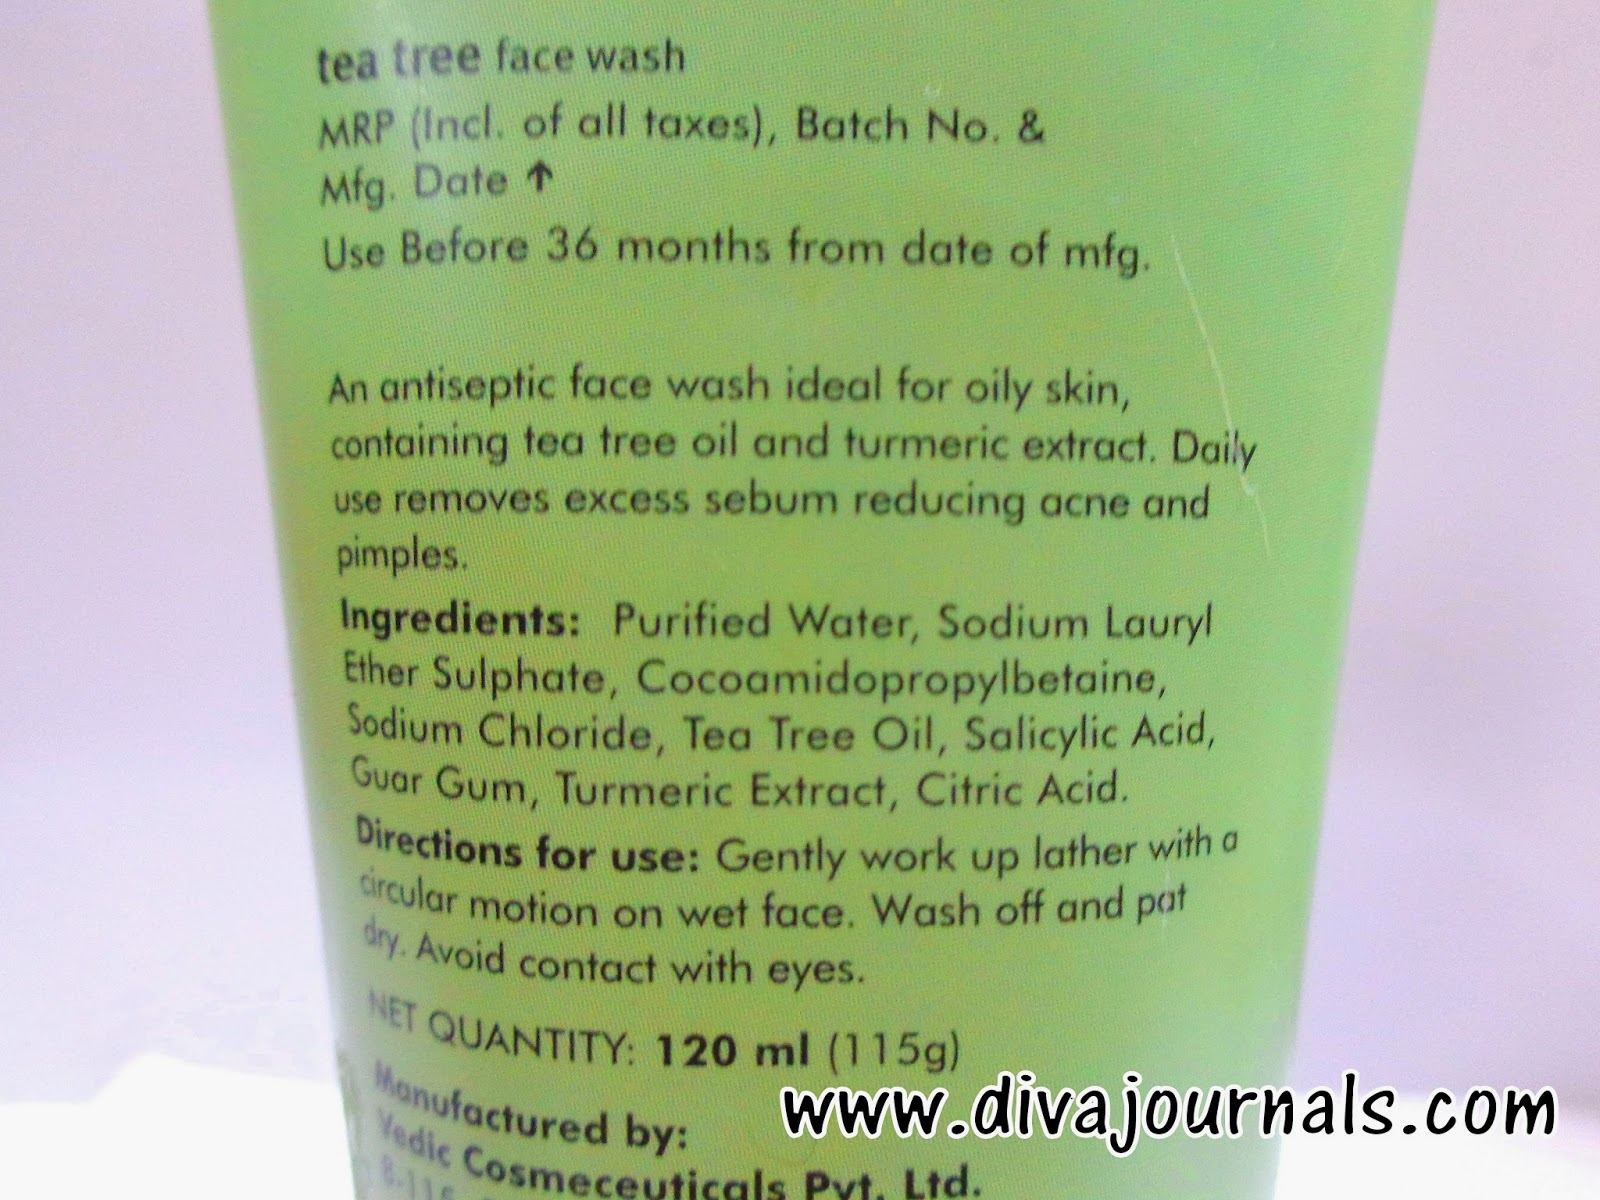 FabIndia Tea Tree Face Wash Review